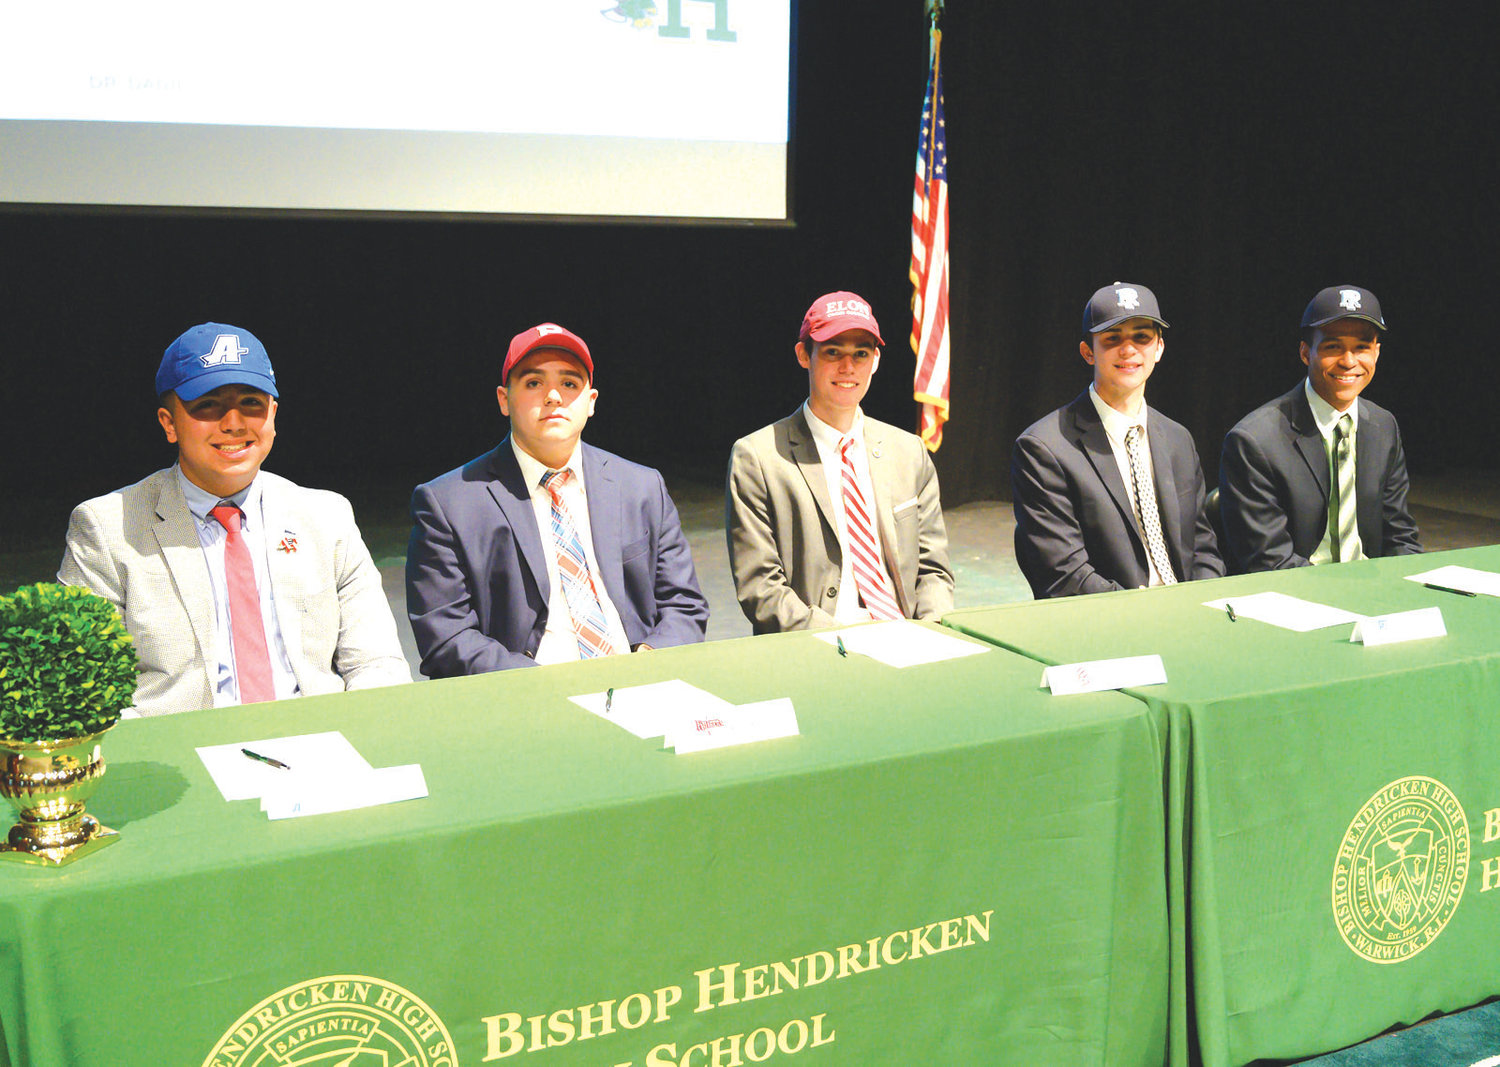 NEXT LEVEL: Five Bishop Hendricken athletes signed their National Letters of Intent on Tuesday. They are from left: Max Paolino, Ryan Morel, Aidan Tierney, Russell White and Duwaun Edwards.